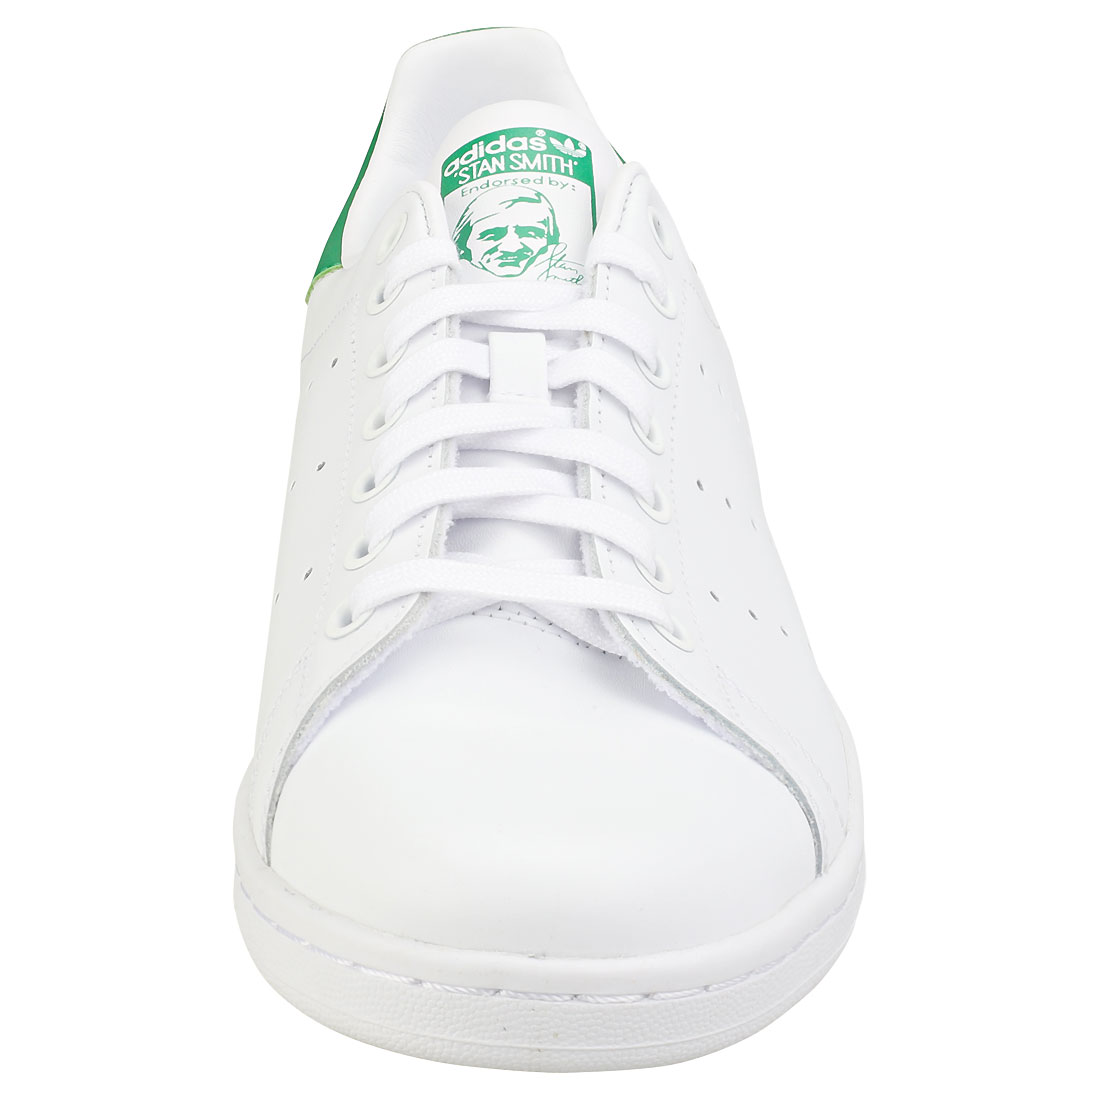 adidas Stan Smith Womens White Green Green White Leather Trainers - 6 UK 3b2168